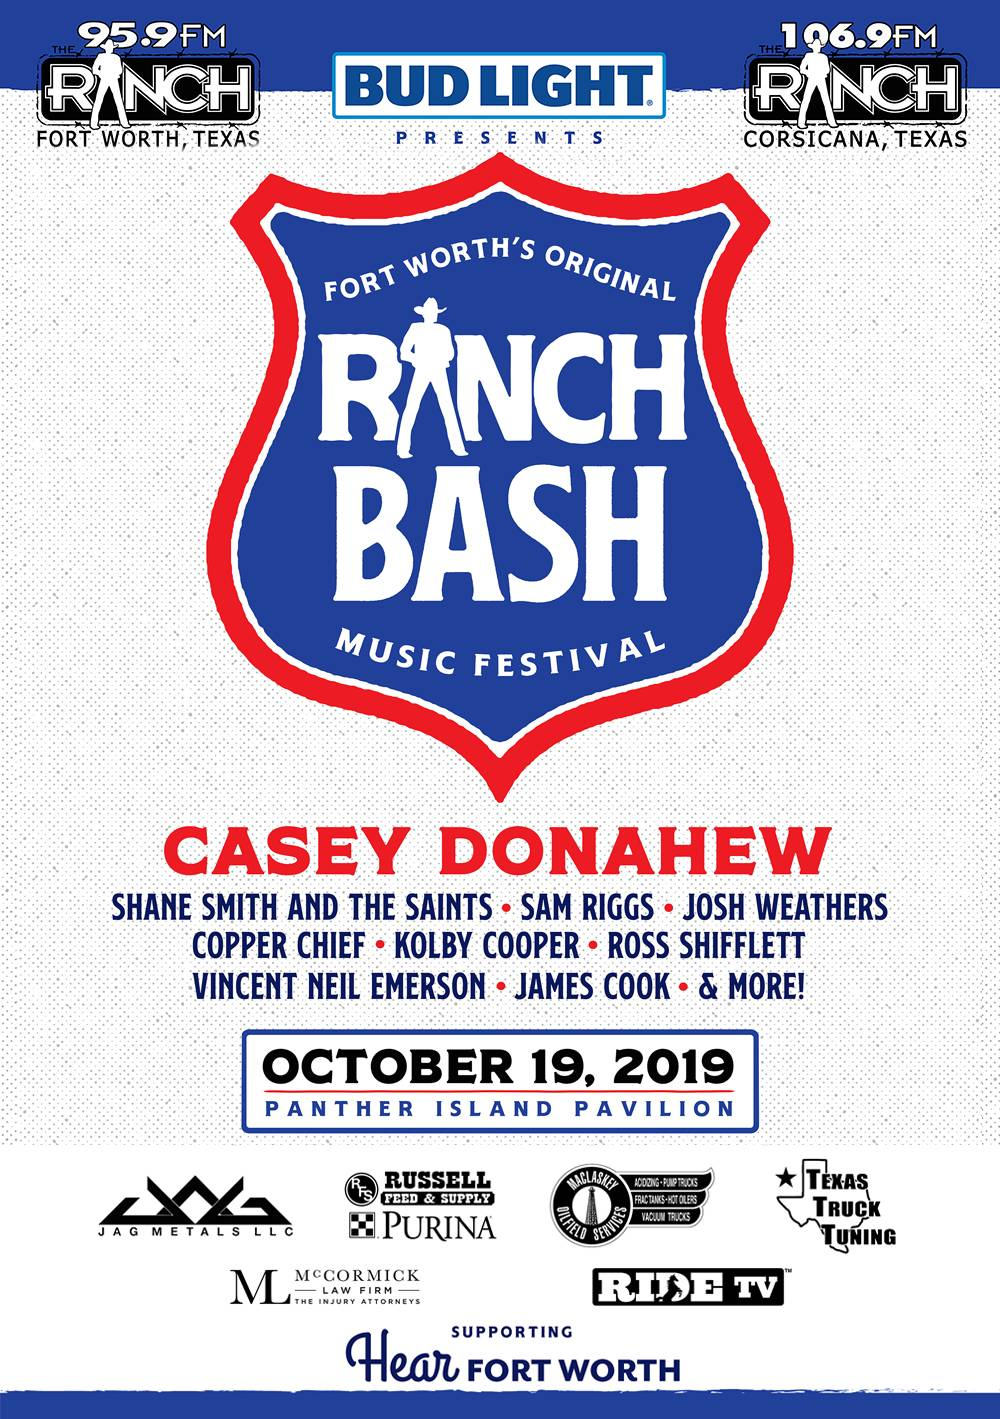 Ranch Bash 2019 - Panther Island Pavilion - Fort Worth, TX